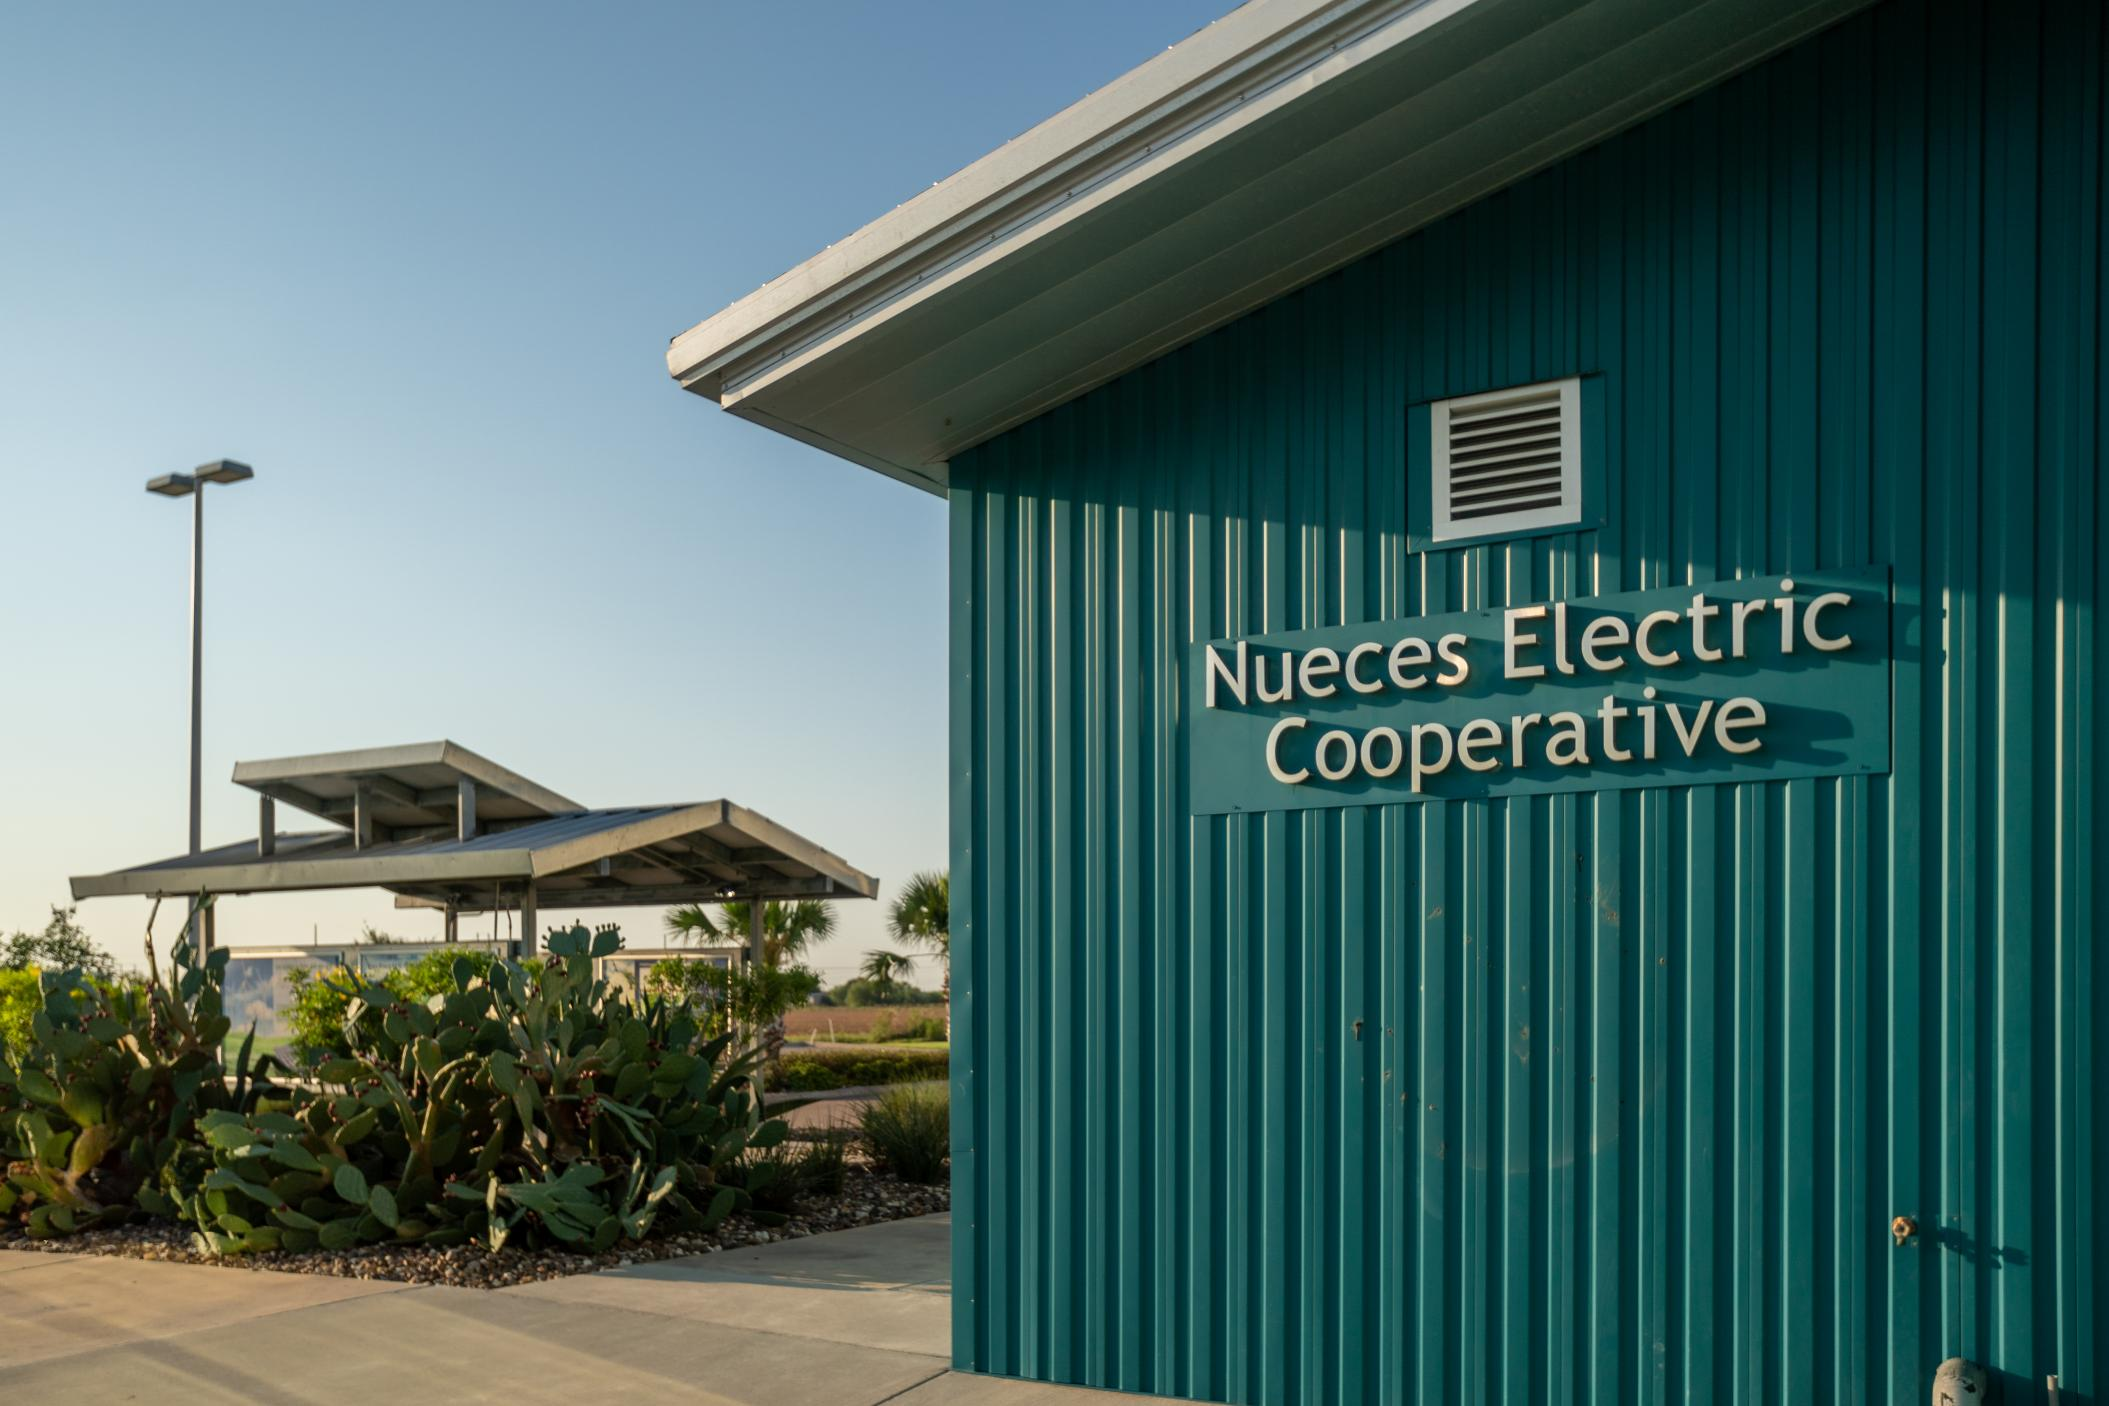 https://nueceselectric.org/sites/nueceselectric/files/hero_images/20200820_nueces_electric_dp_015_50249755191_o.jpg